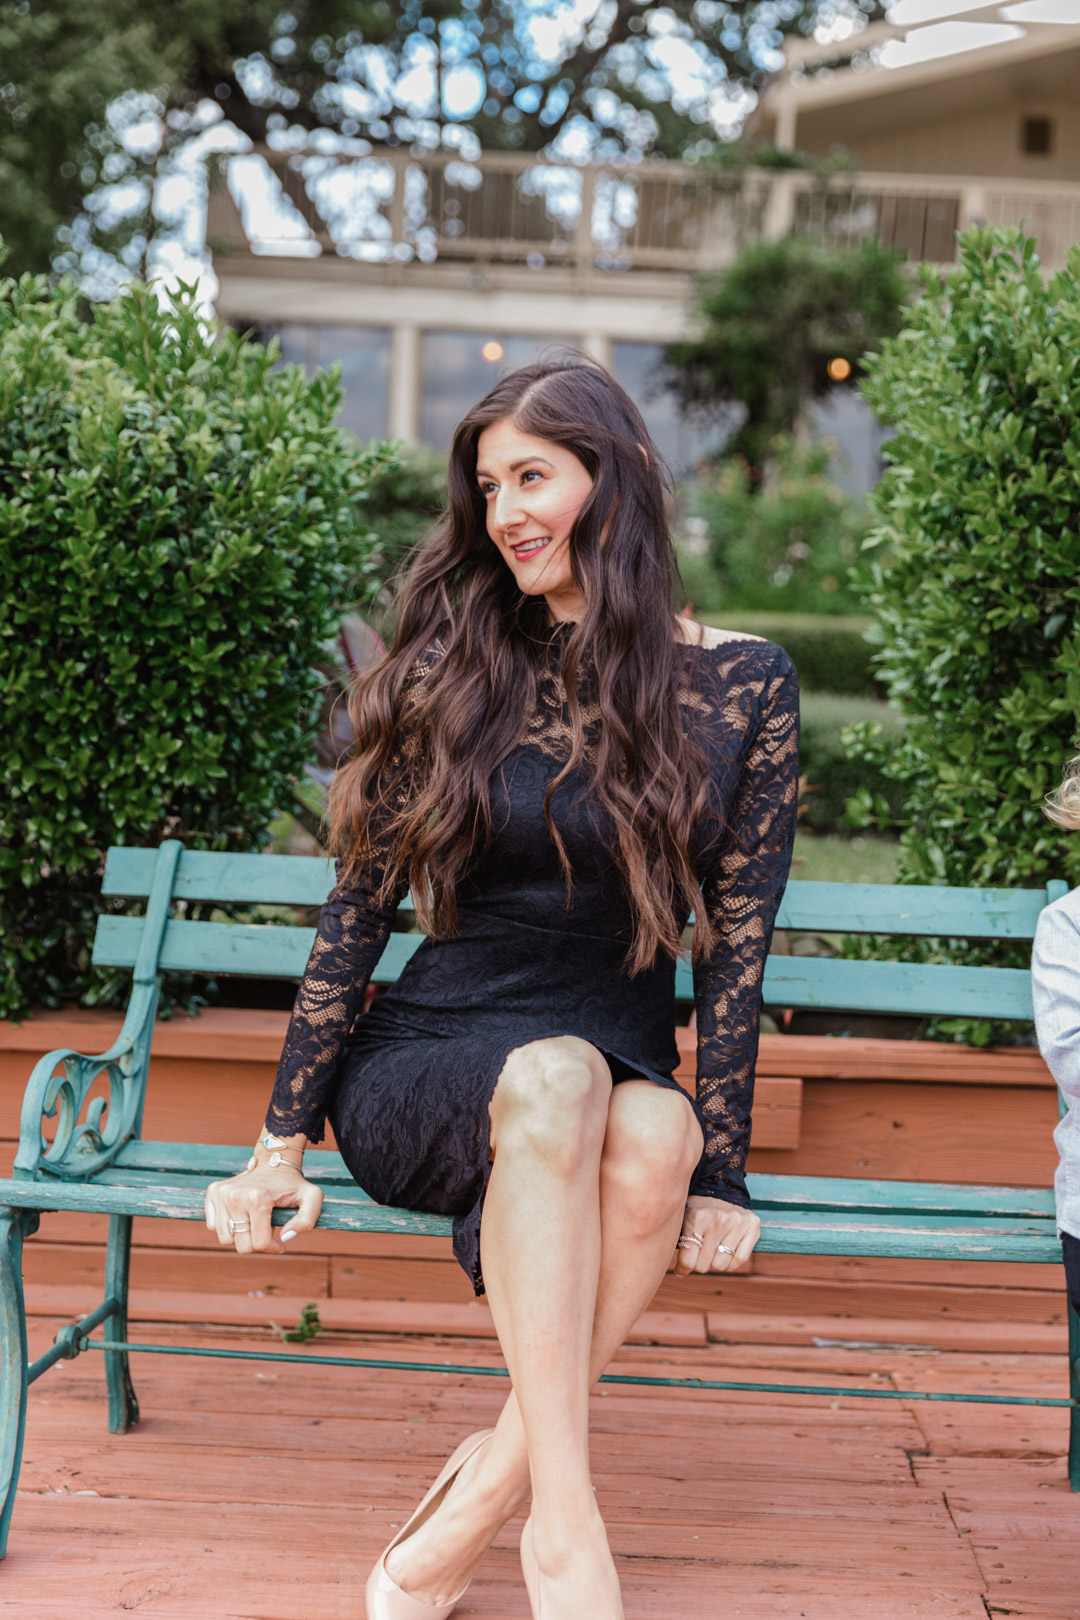 Fall Wedding Style: little Black dress |The Fashionable MavenFall Wedding Style: little Black dress |The Fashionable Maven